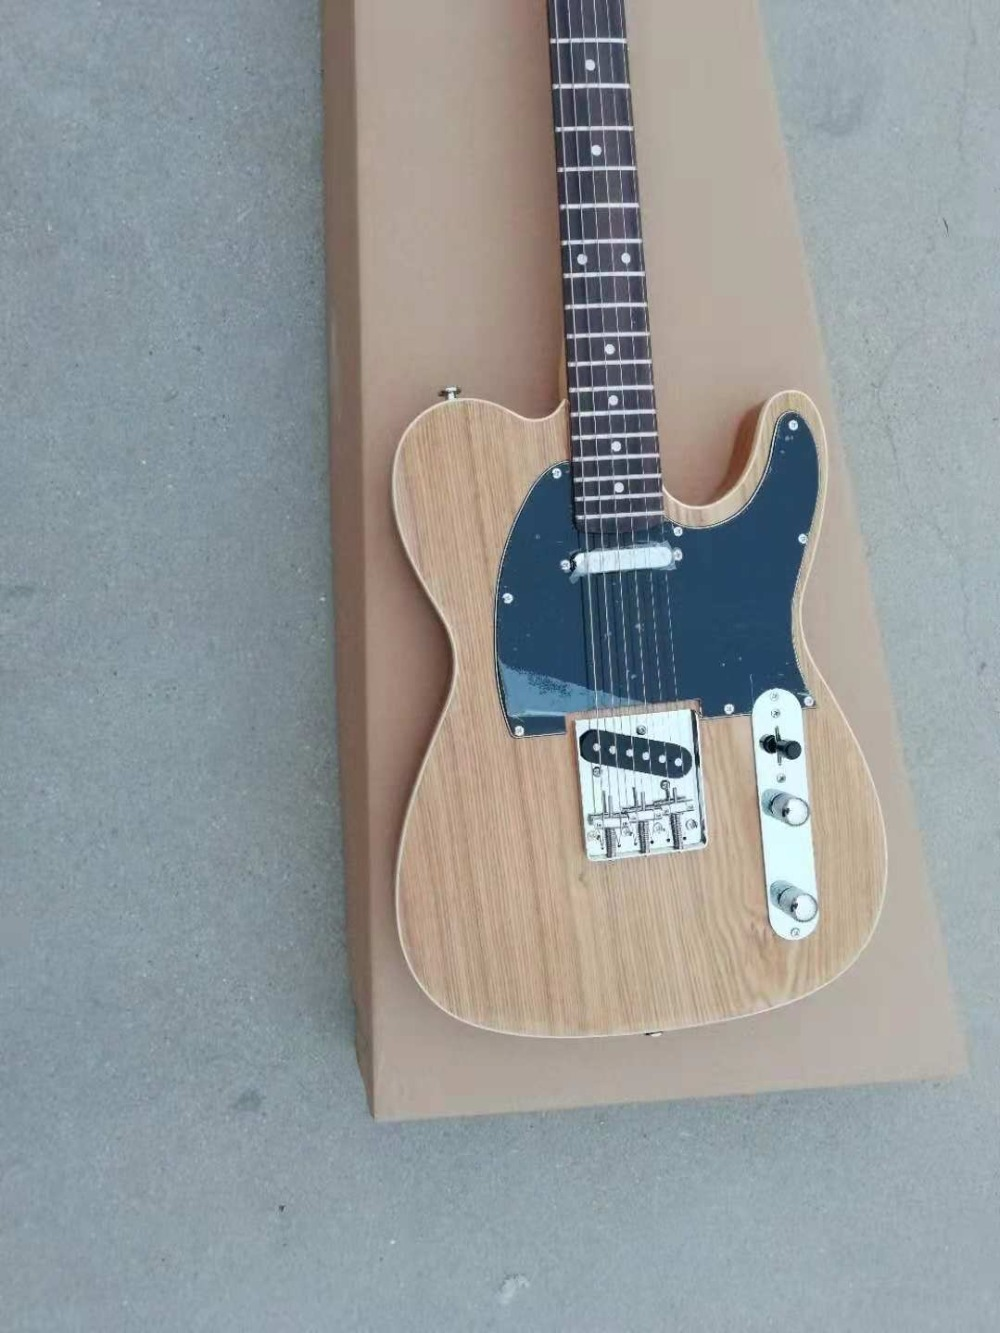 buy normal ash wood nature tl electric guitar from reliable guitar suppliers on. Black Bedroom Furniture Sets. Home Design Ideas